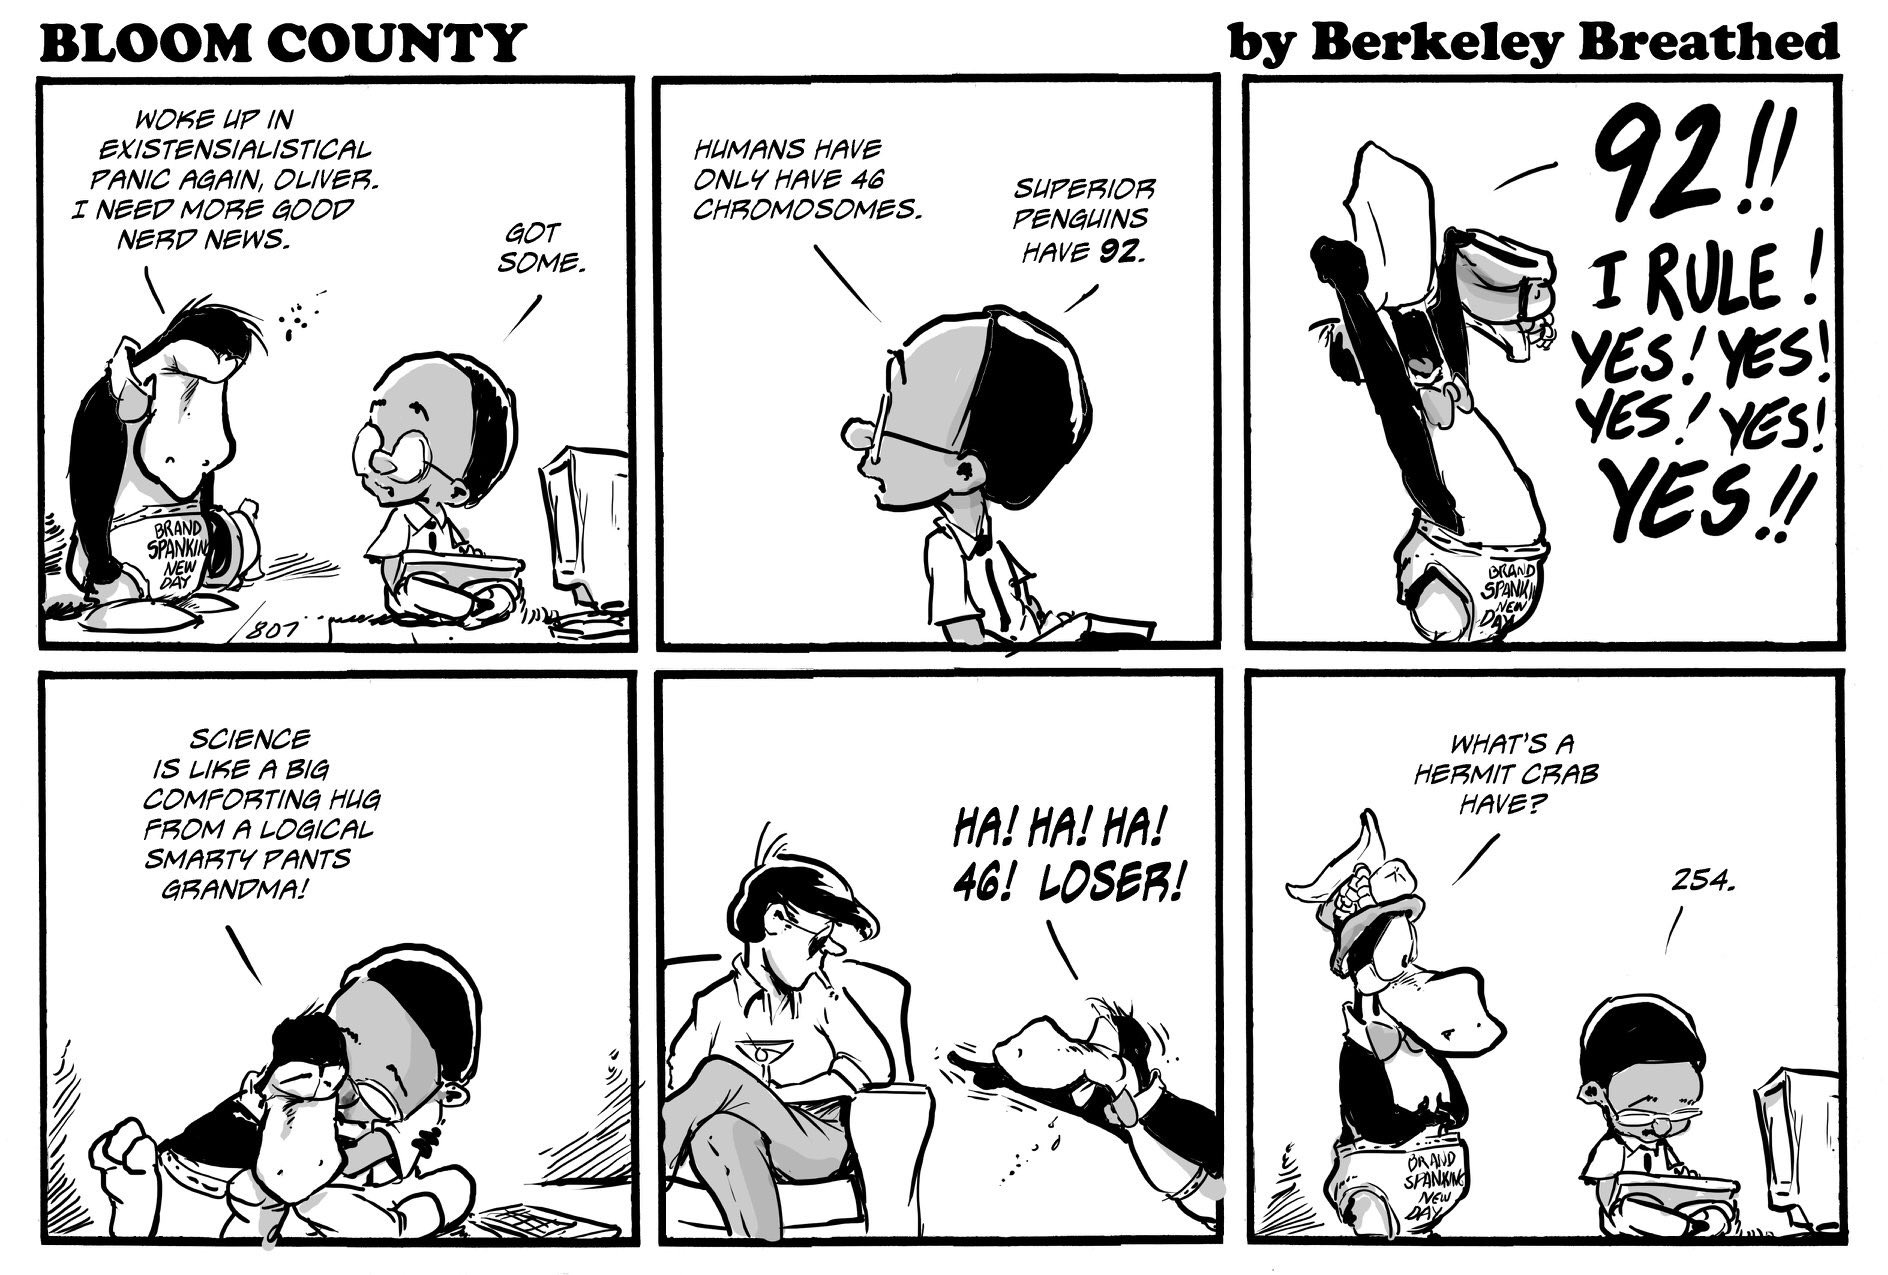 bloom county - science